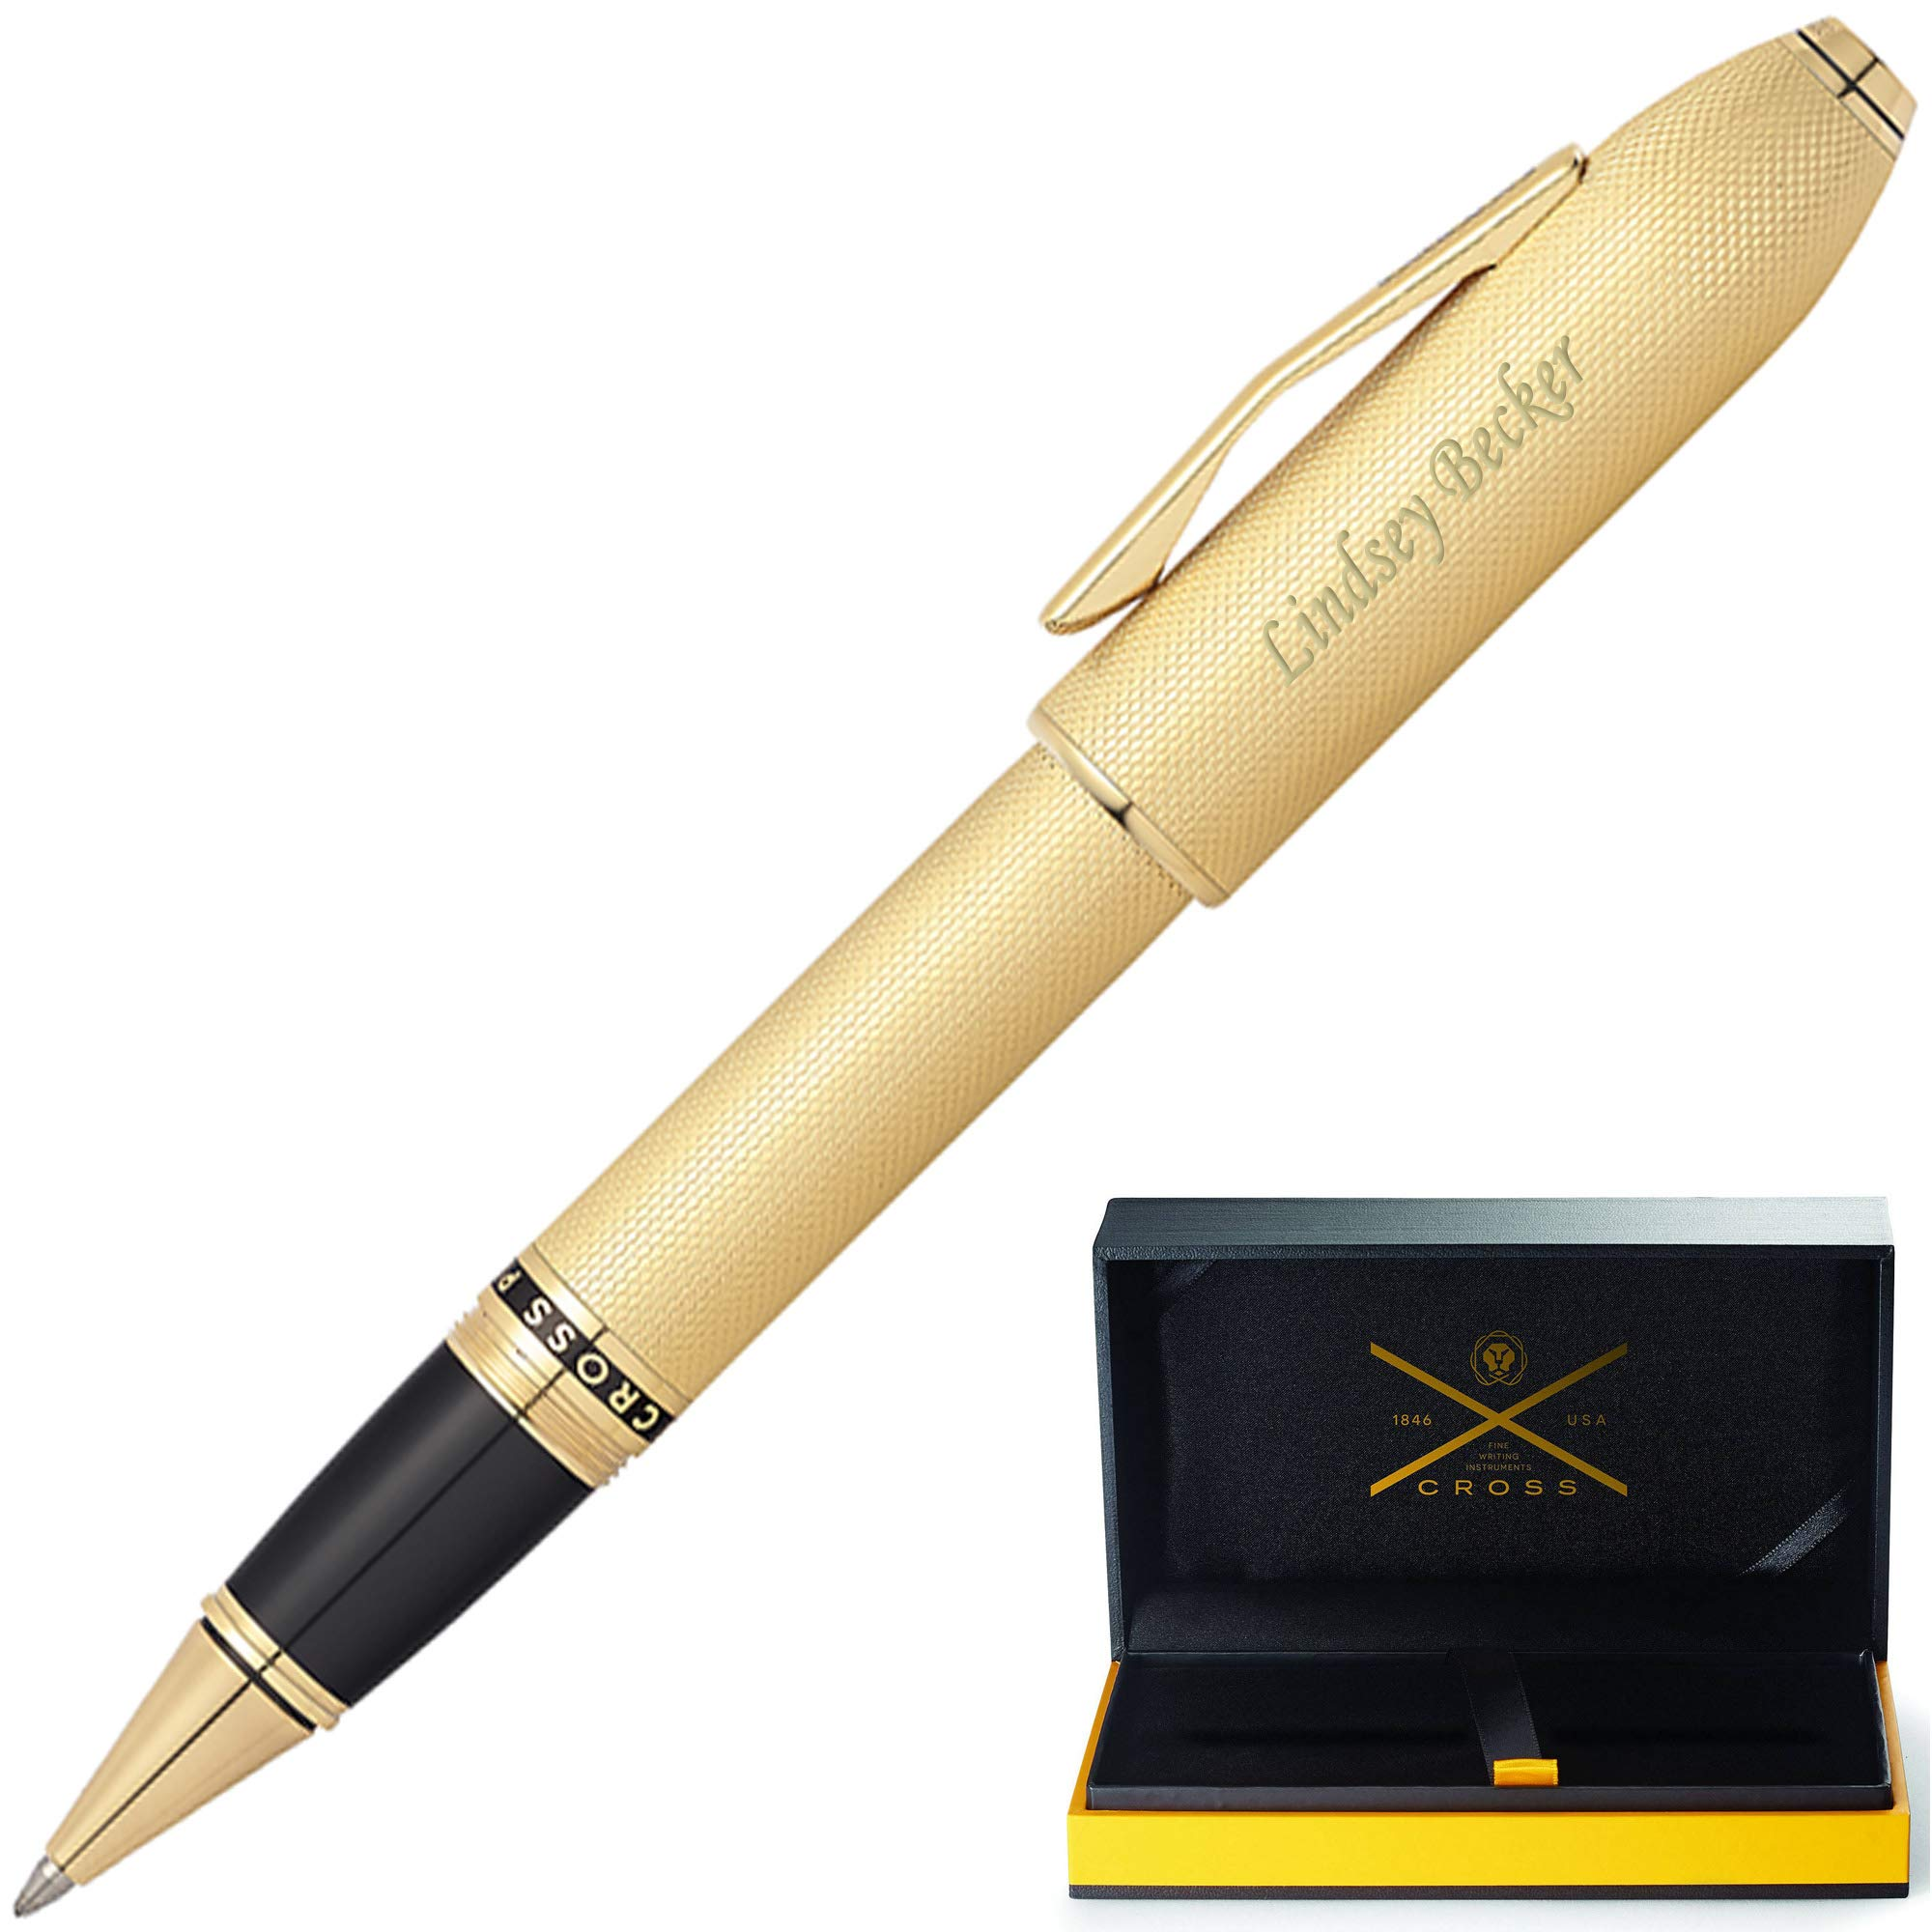 Engraved Cross Peerless 125 Rollerball Pen - 23K Gold Plated. Custom Engraving by Dayspring Pens. Included! Comes in Cross Gift Box.